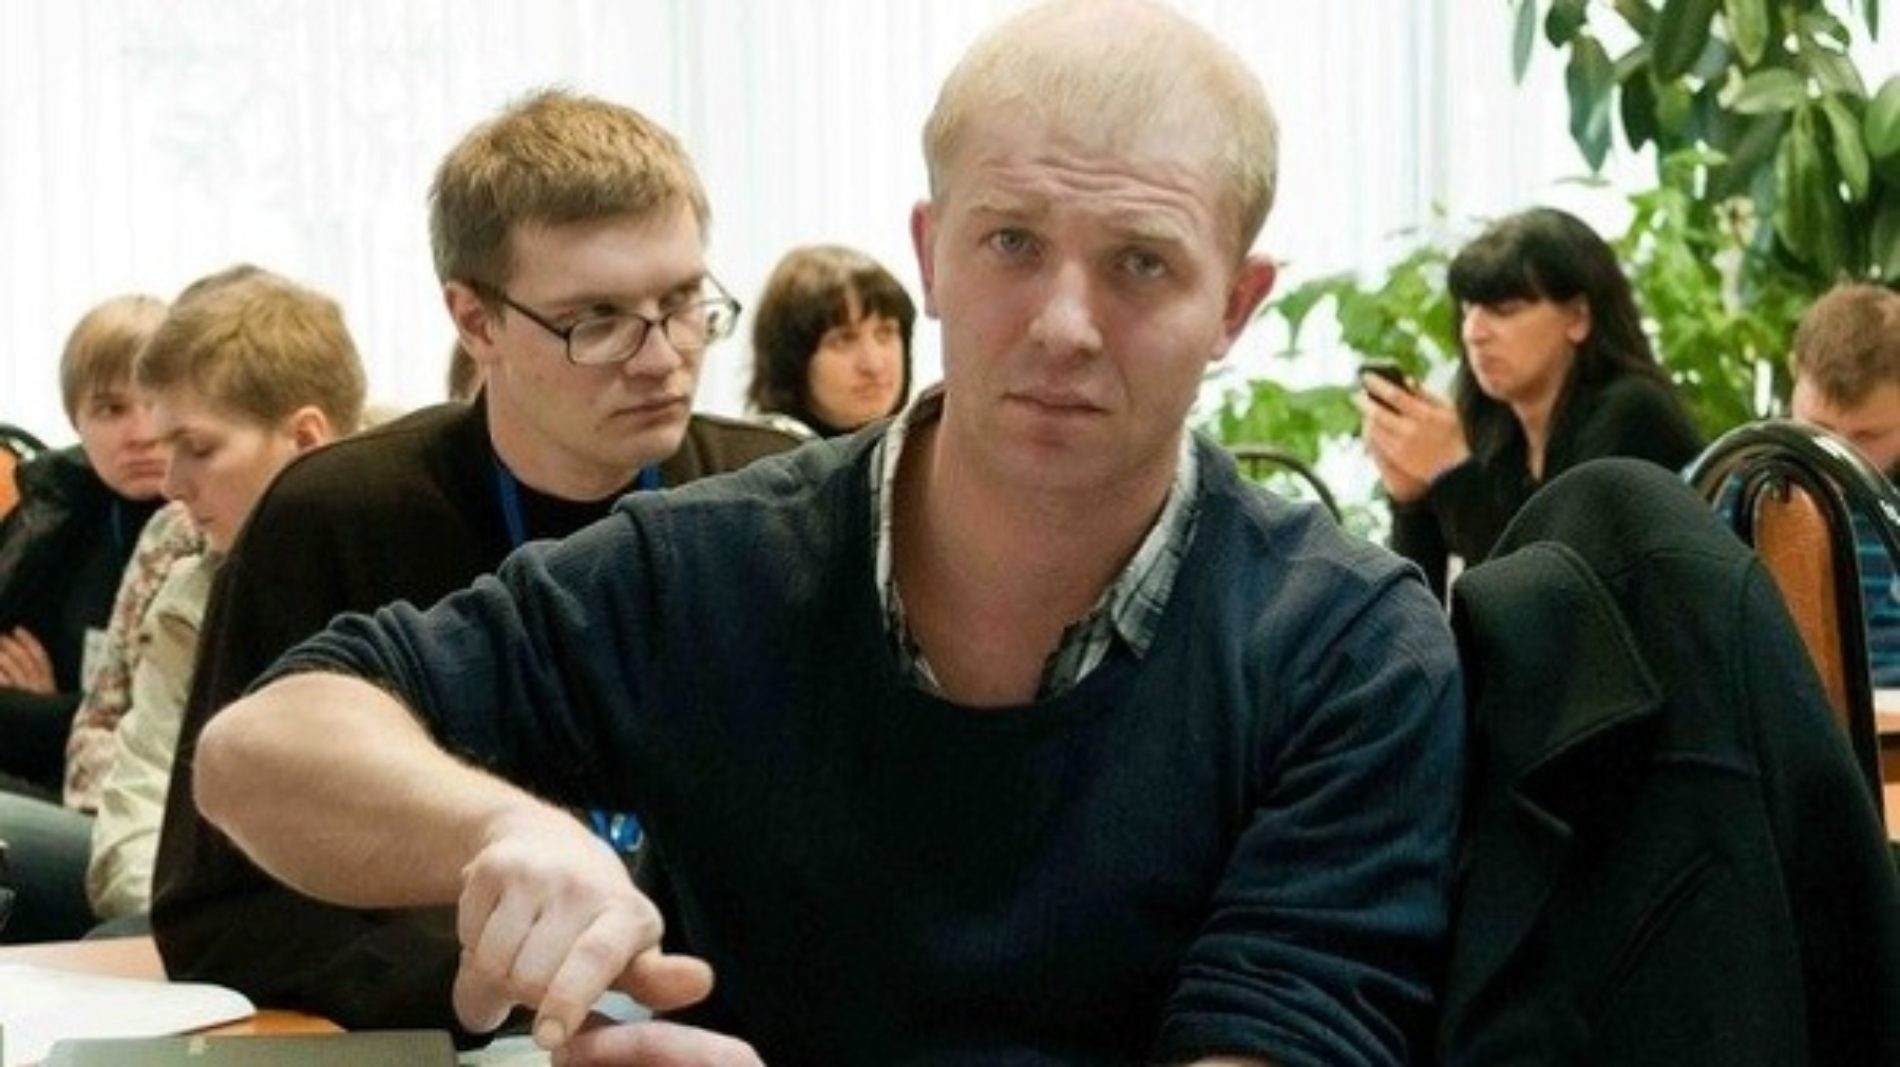 Russian man fined by court for not being homophobic